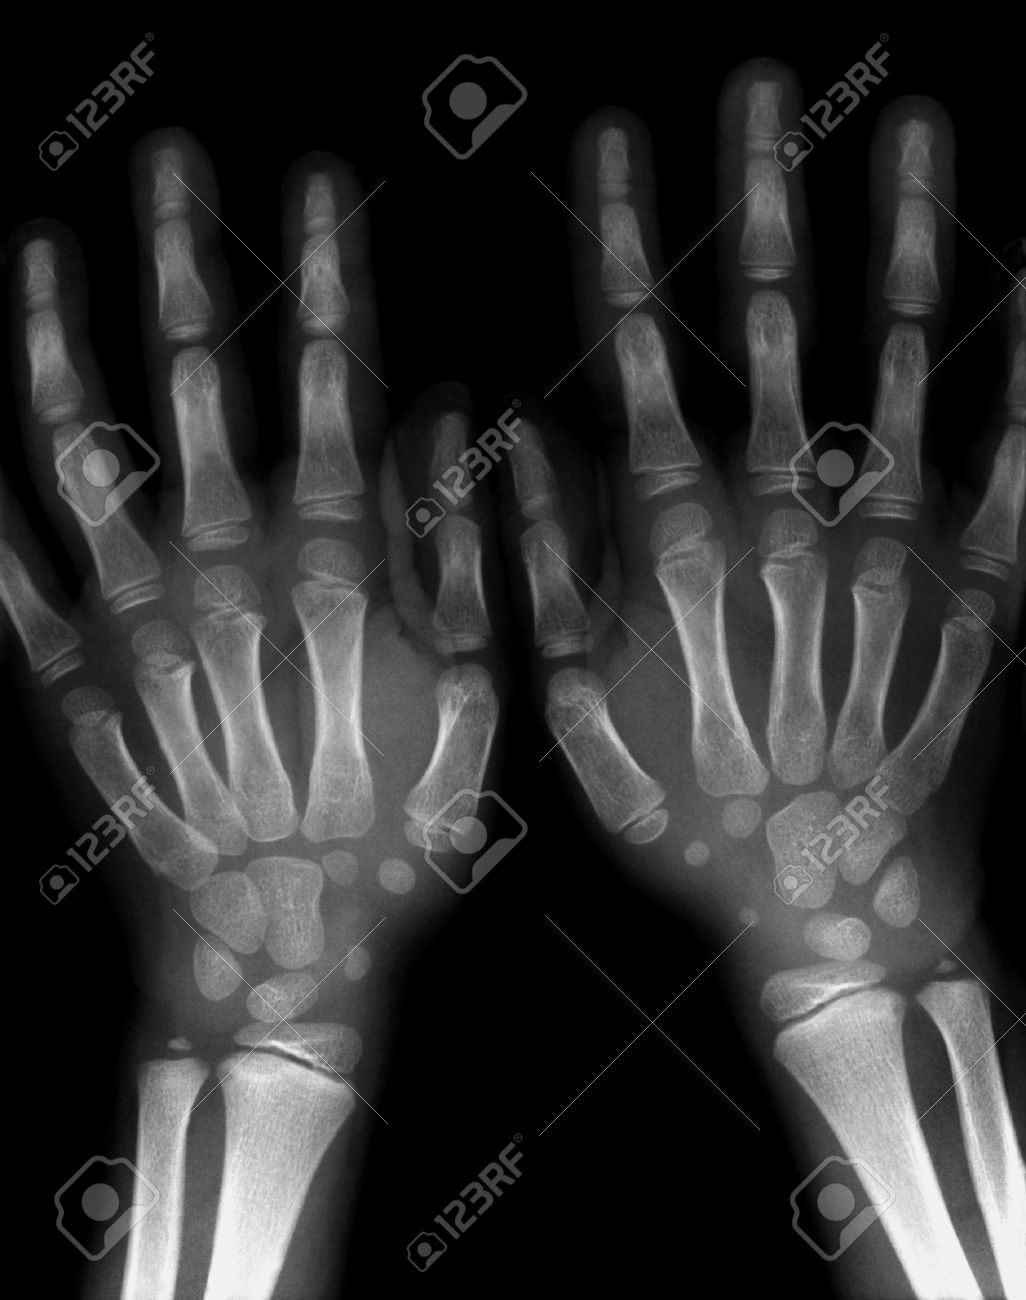 7 Years Old Boy Both Hands And Wrists X-ray Stock Photo, Picture And ...